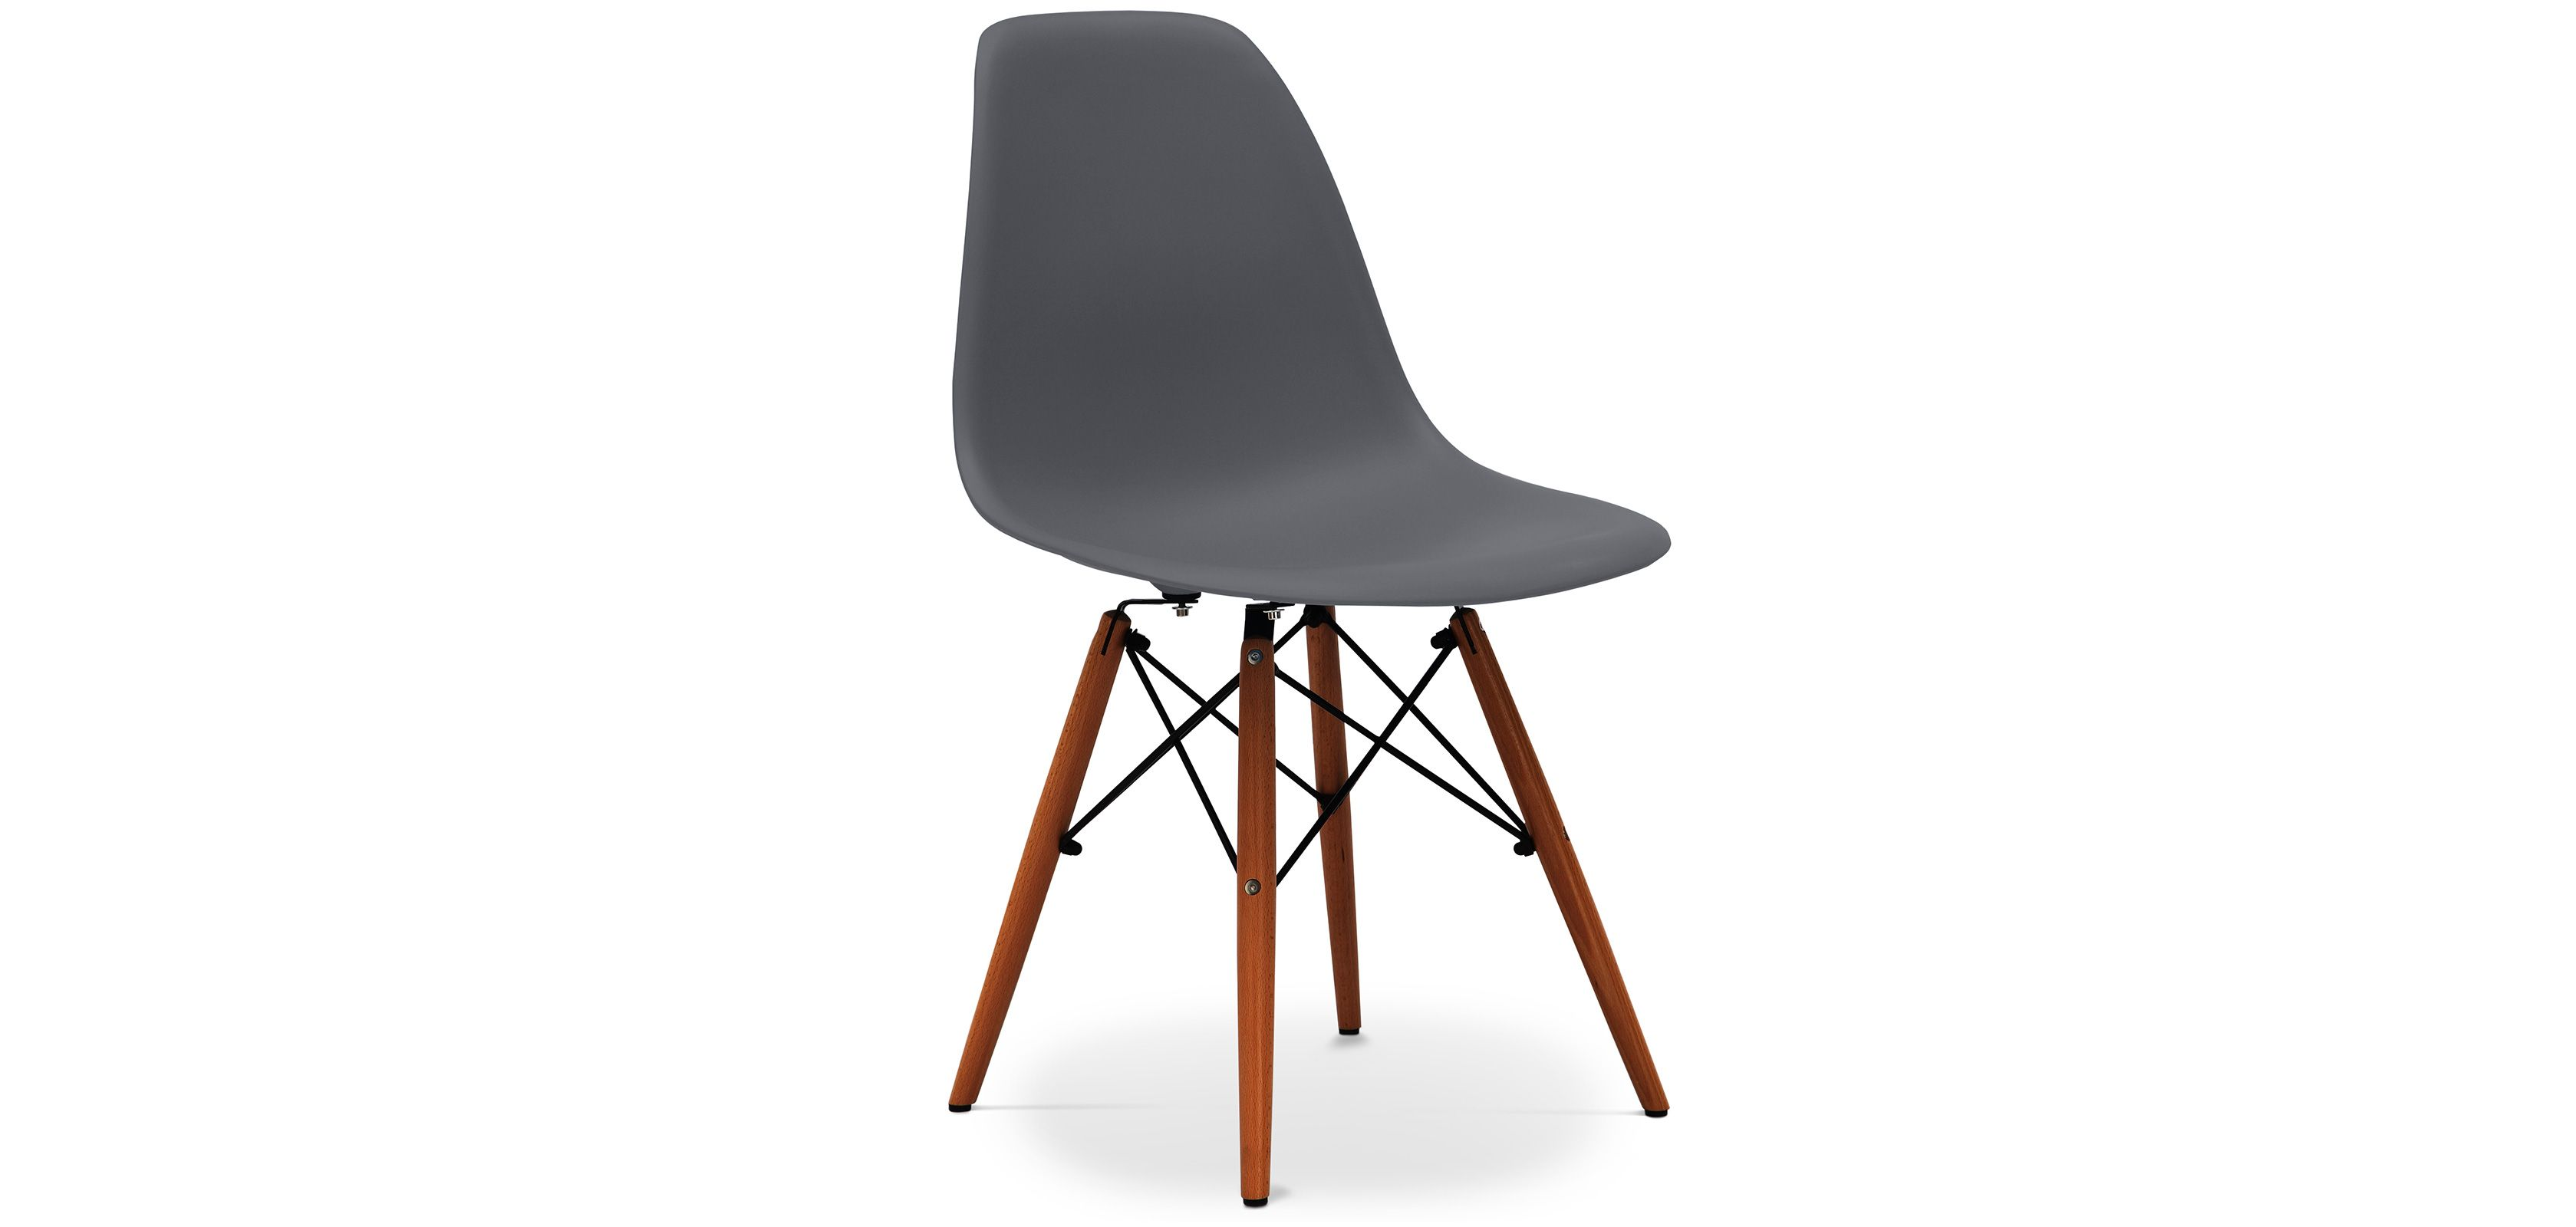 Chaise DSW Pietement Fonce Charles Eames Style